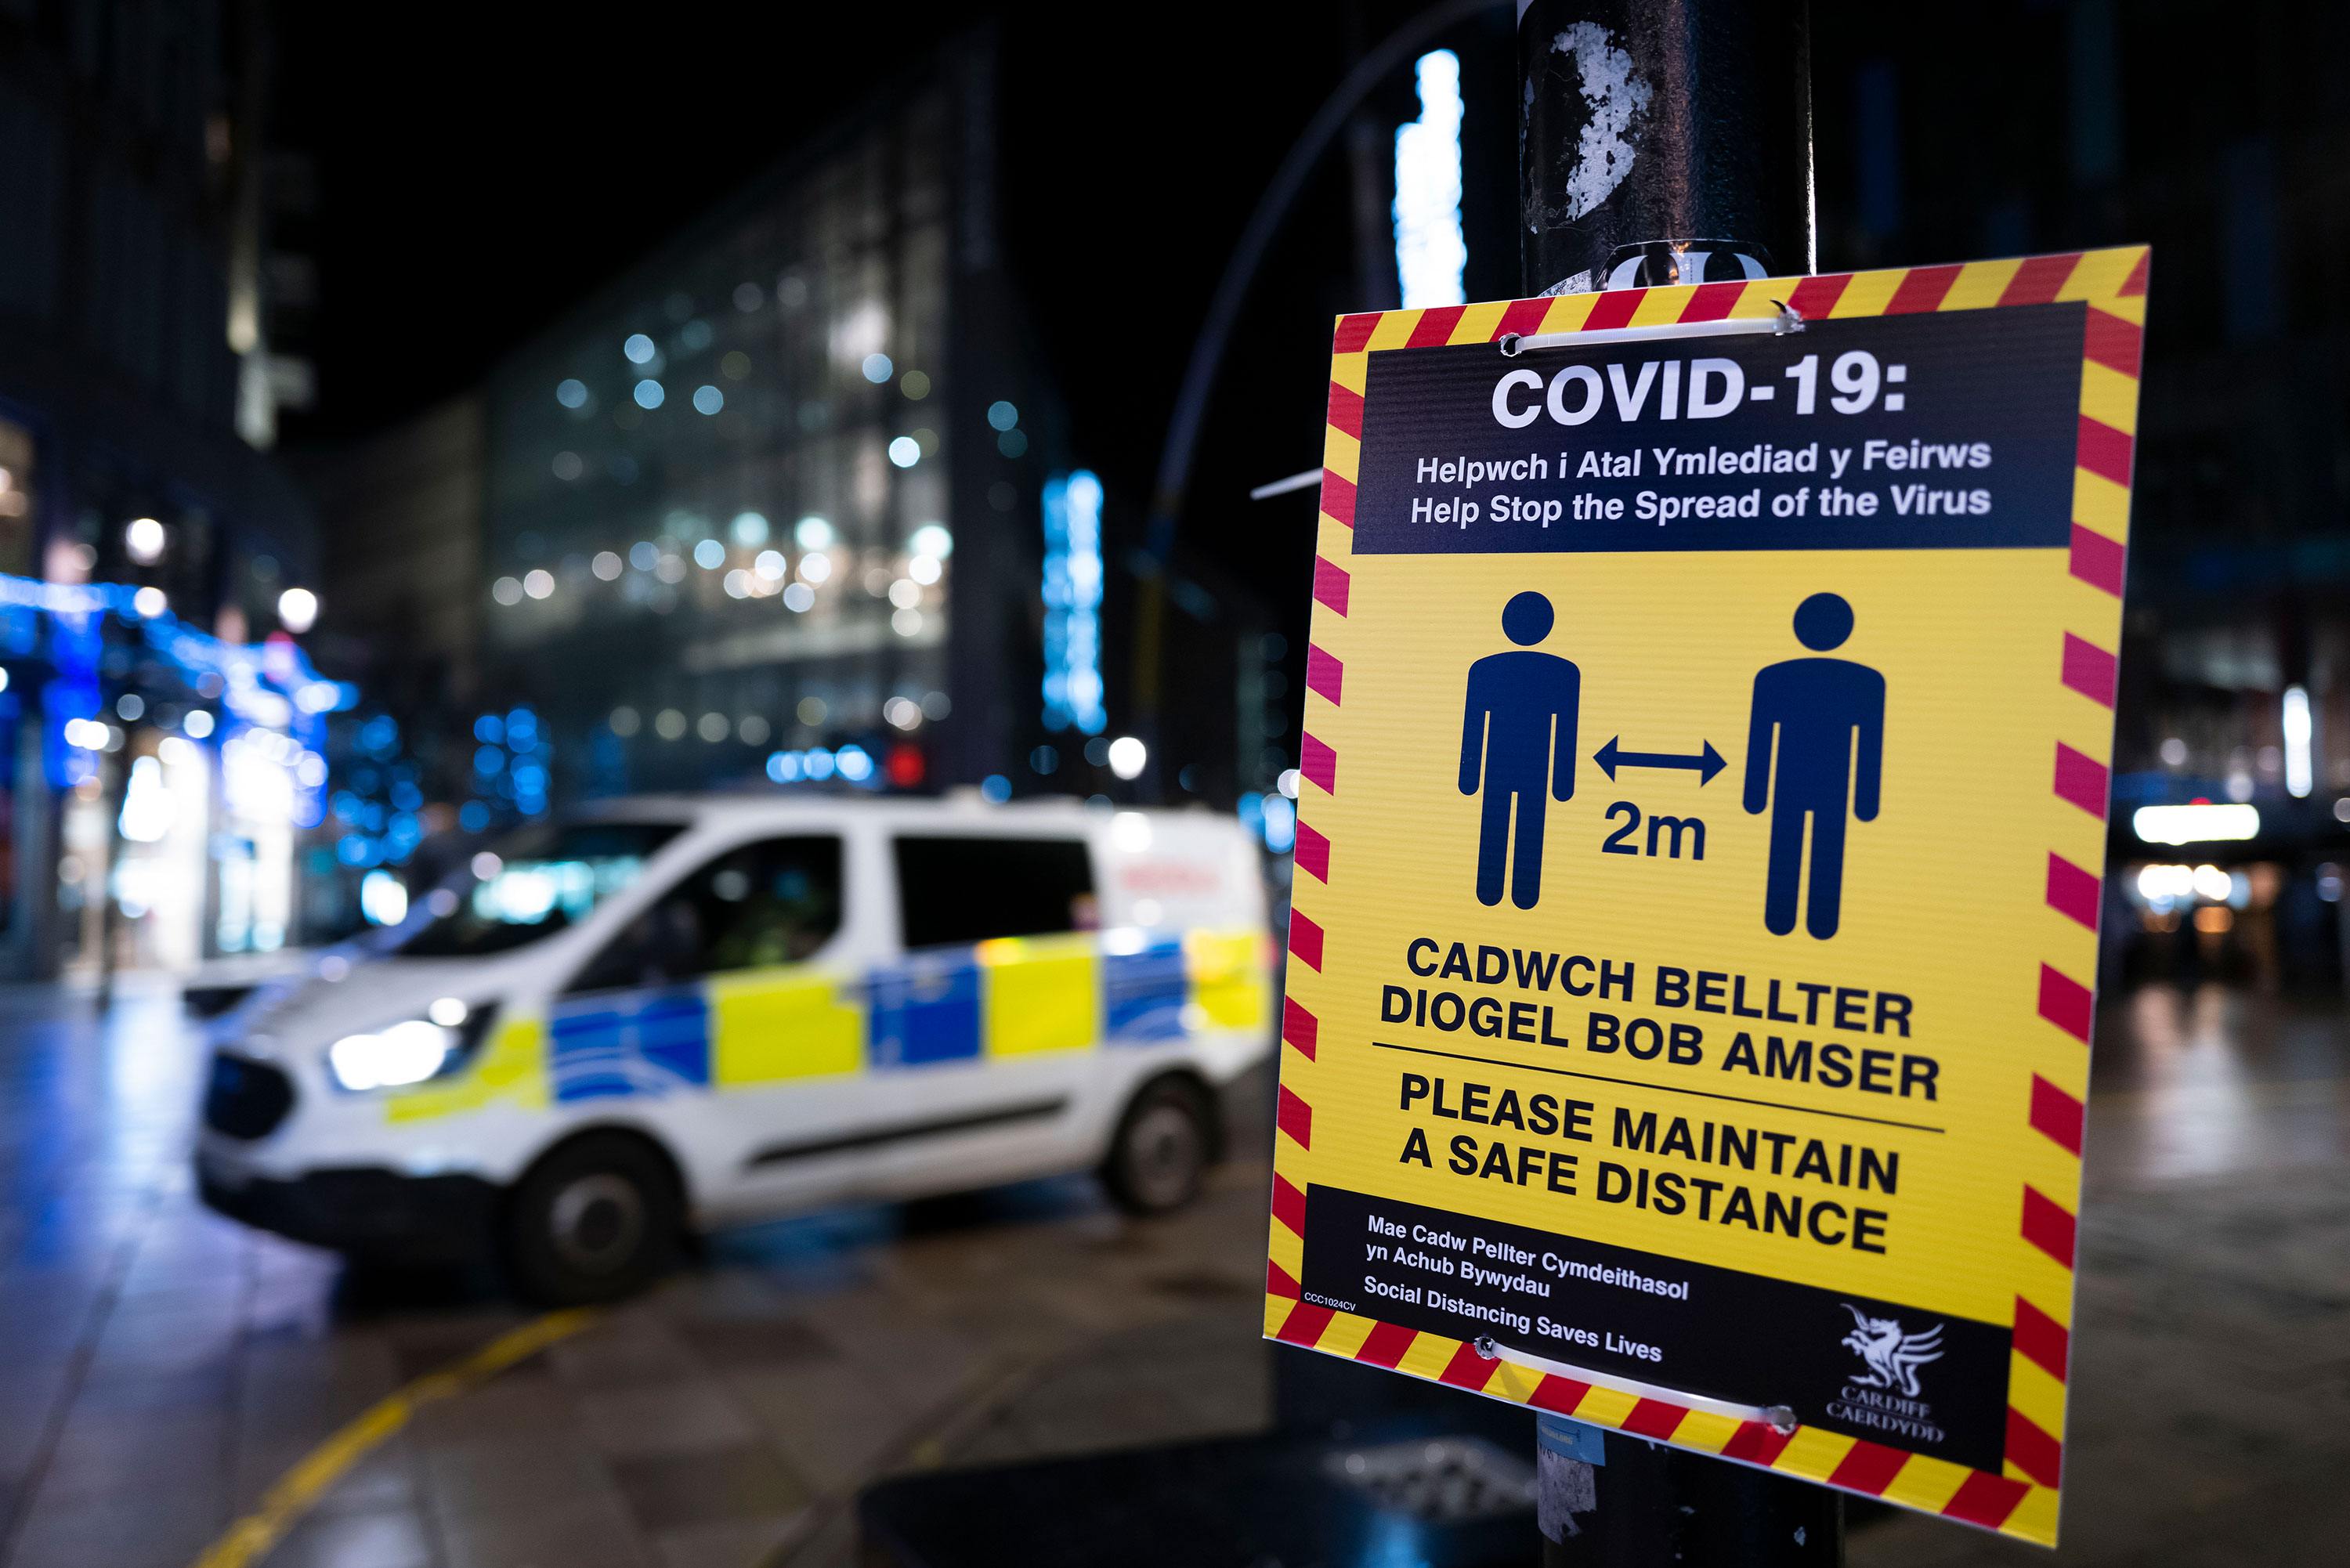 A sign reminds people to socially distance to curb the spread of Covid-19 in Cardiff, Wales, on December 19.